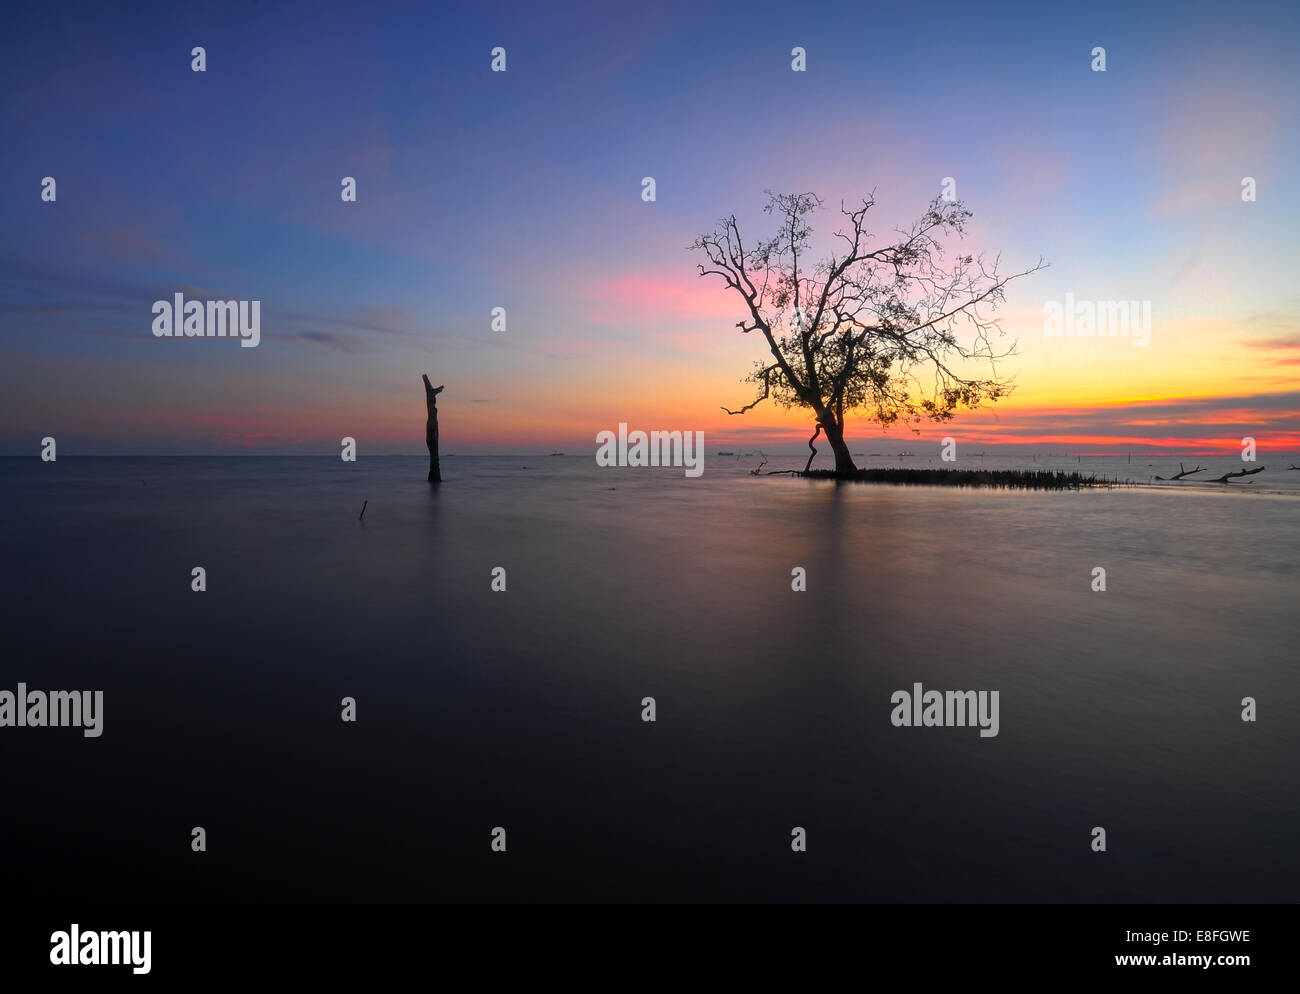 Malaysia, Selangor, Banting, Single tree on Kelanang Beach at sunset - Stock Image